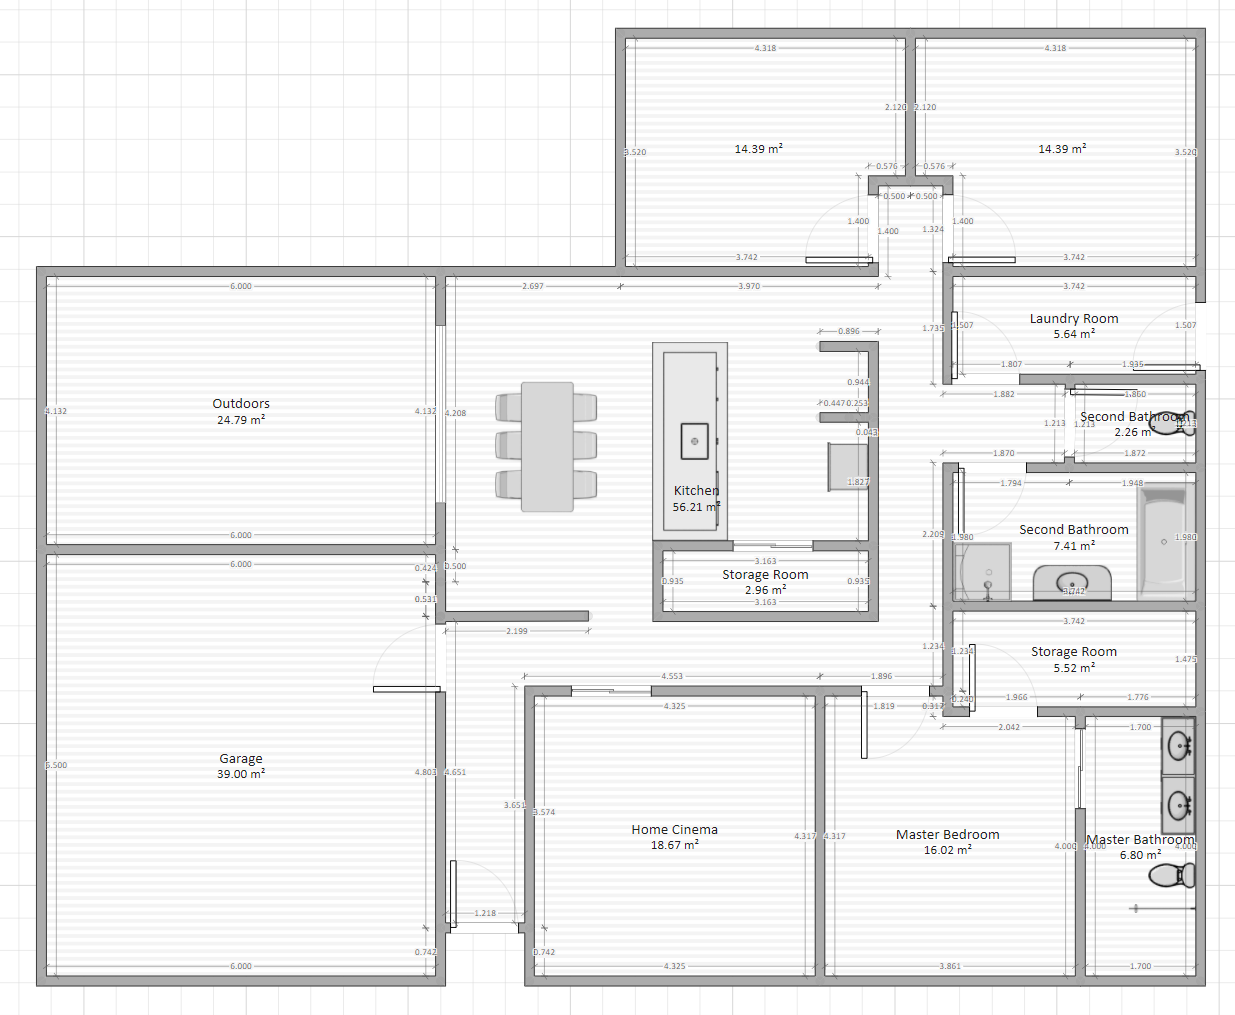 Custom House Plan - Wanting Feedback and Suggestions